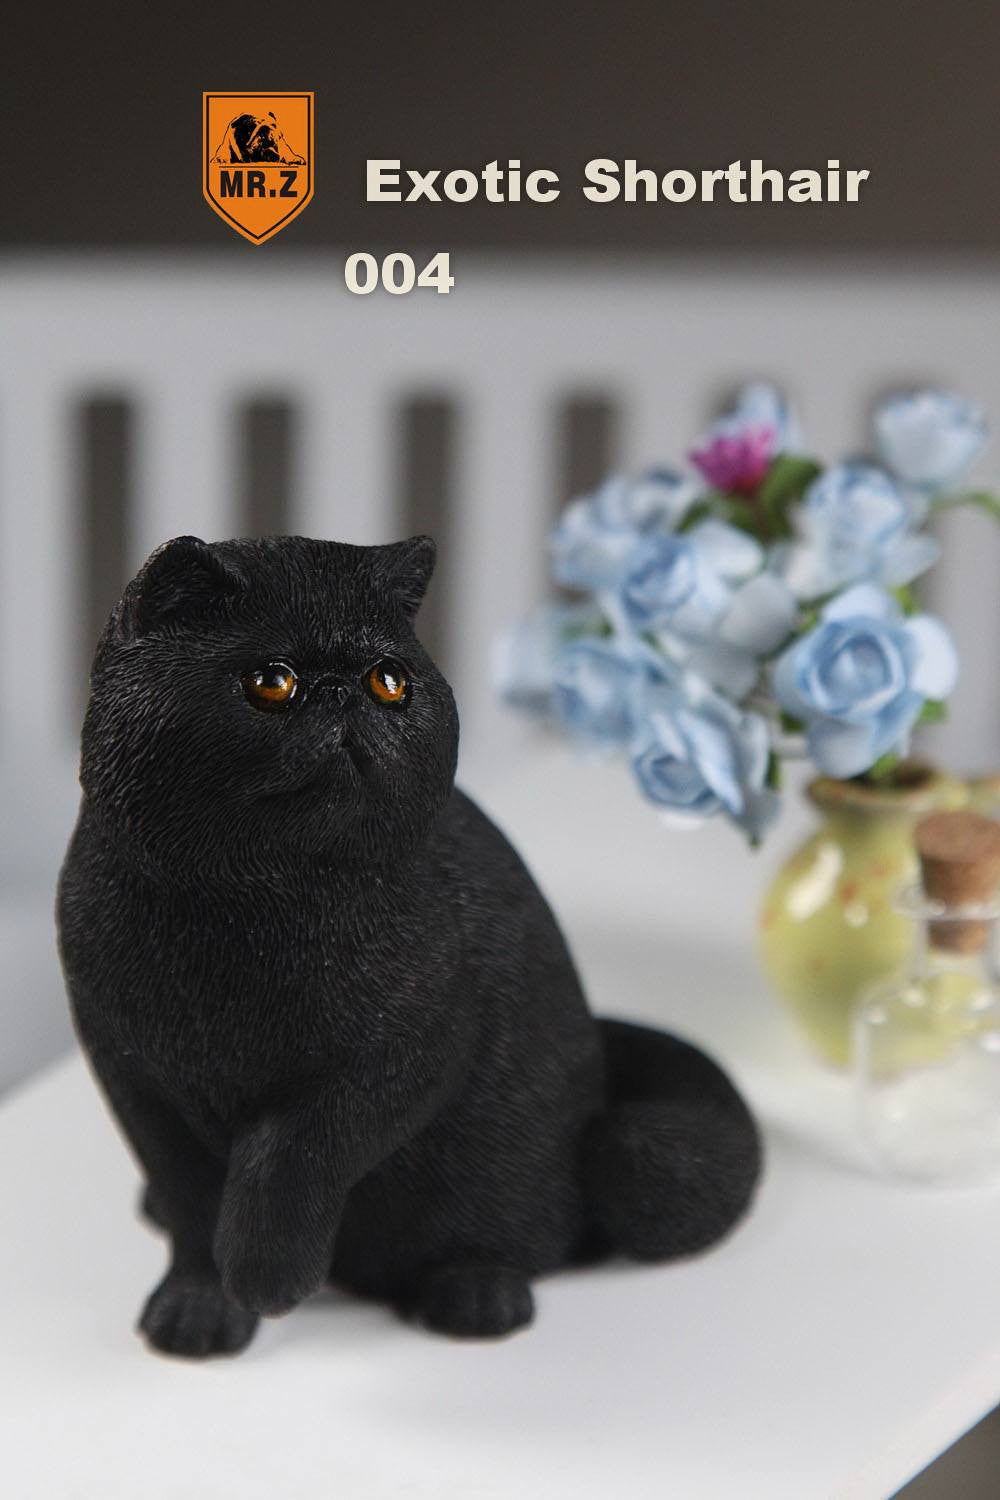 MR.Z - Real Animal Series No.8 - 1/6th Scale Exotic Shorthair Cat (Garfield) 001-005 - Marvelous Toys - 28